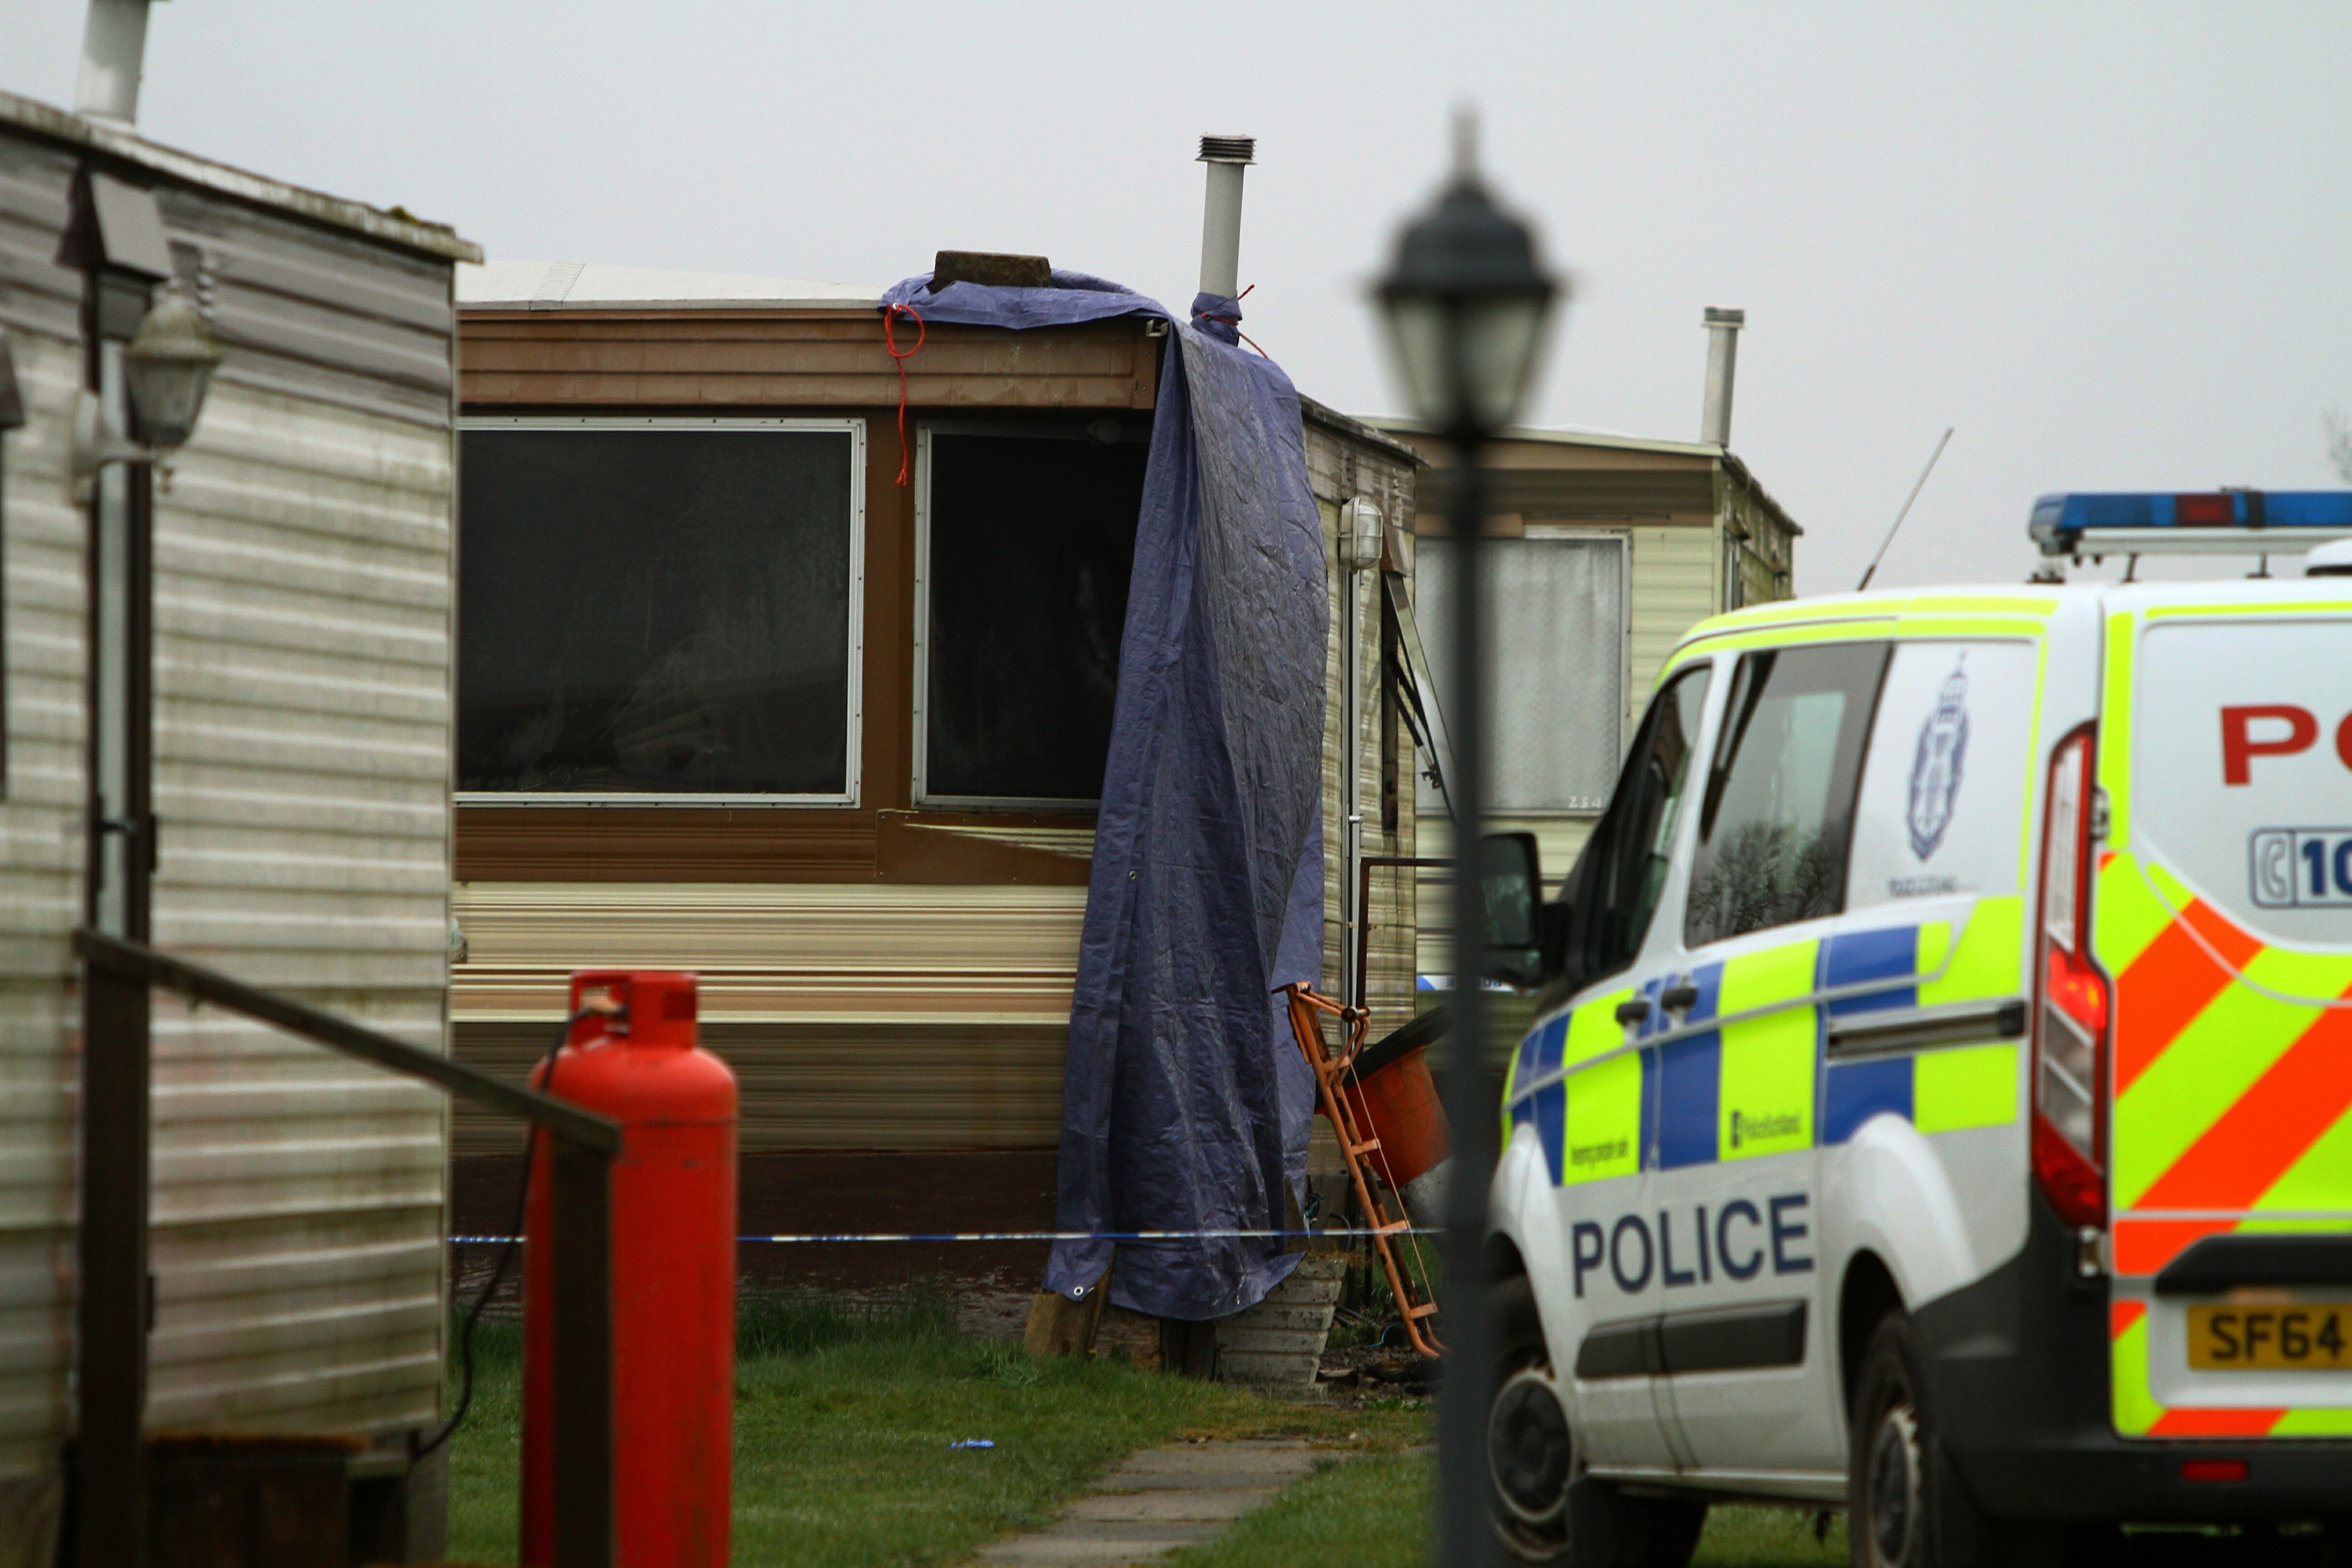 The scene of the April tragedy at Woodley on the outskirts of Arbroath